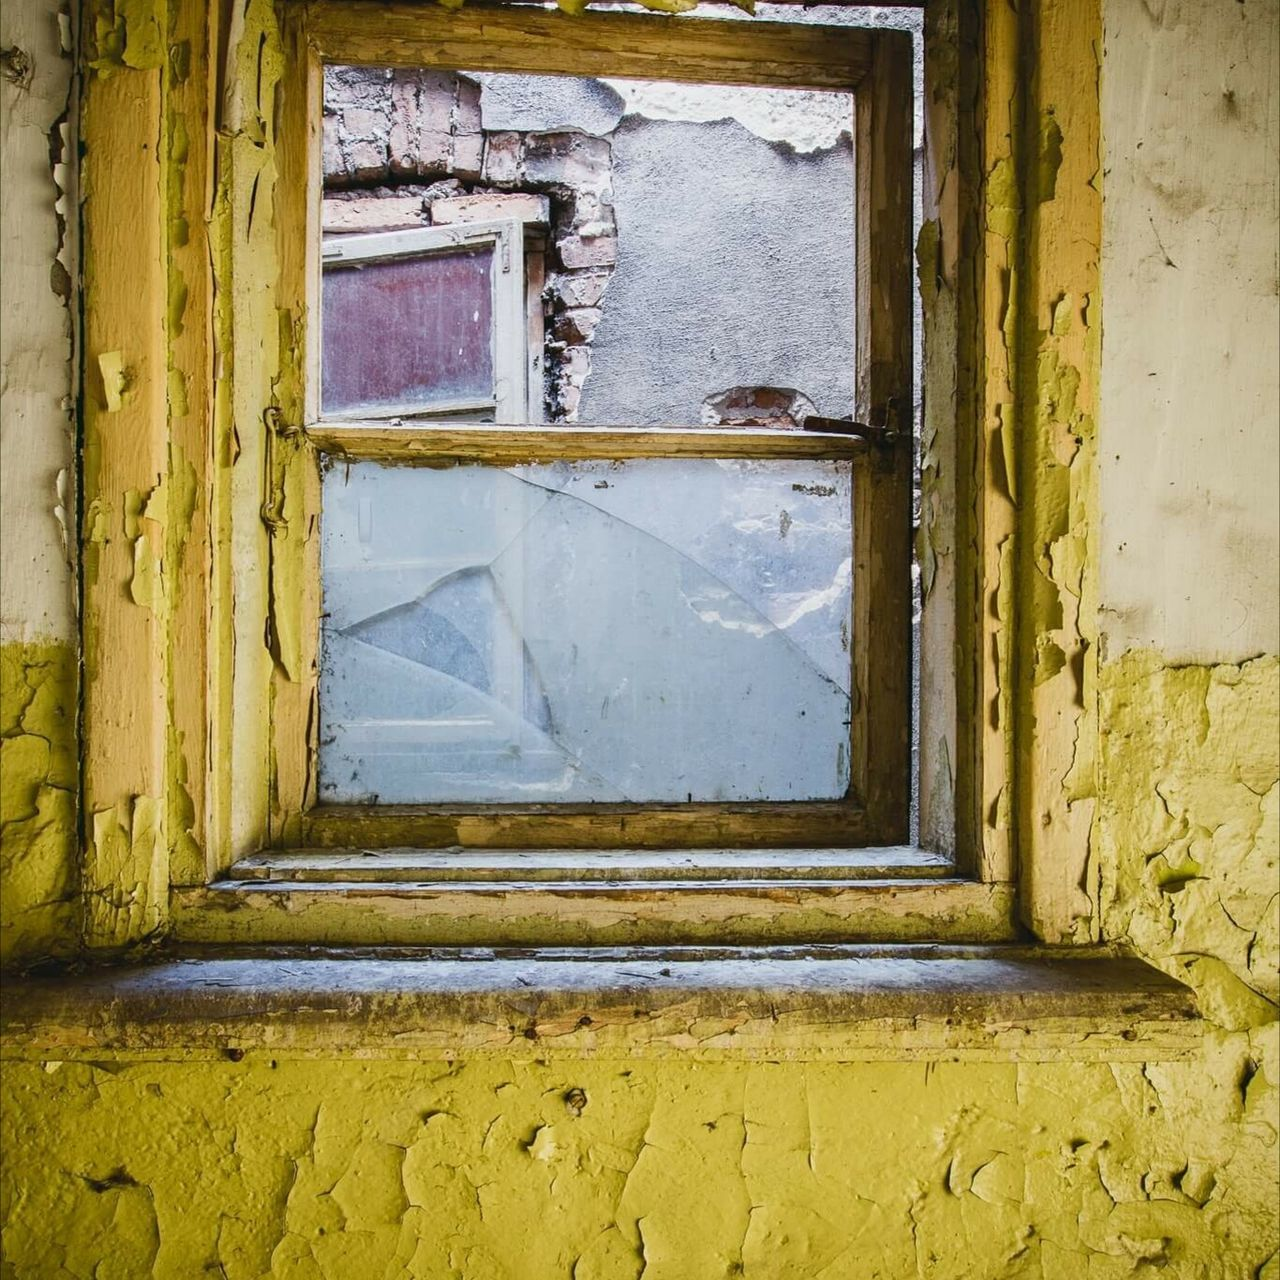 door, window, house, old, abandoned, damaged, architecture, built structure, weathered, dirty, doorway, bad condition, day, no people, yellow, indoors, rotting, close-up, open door